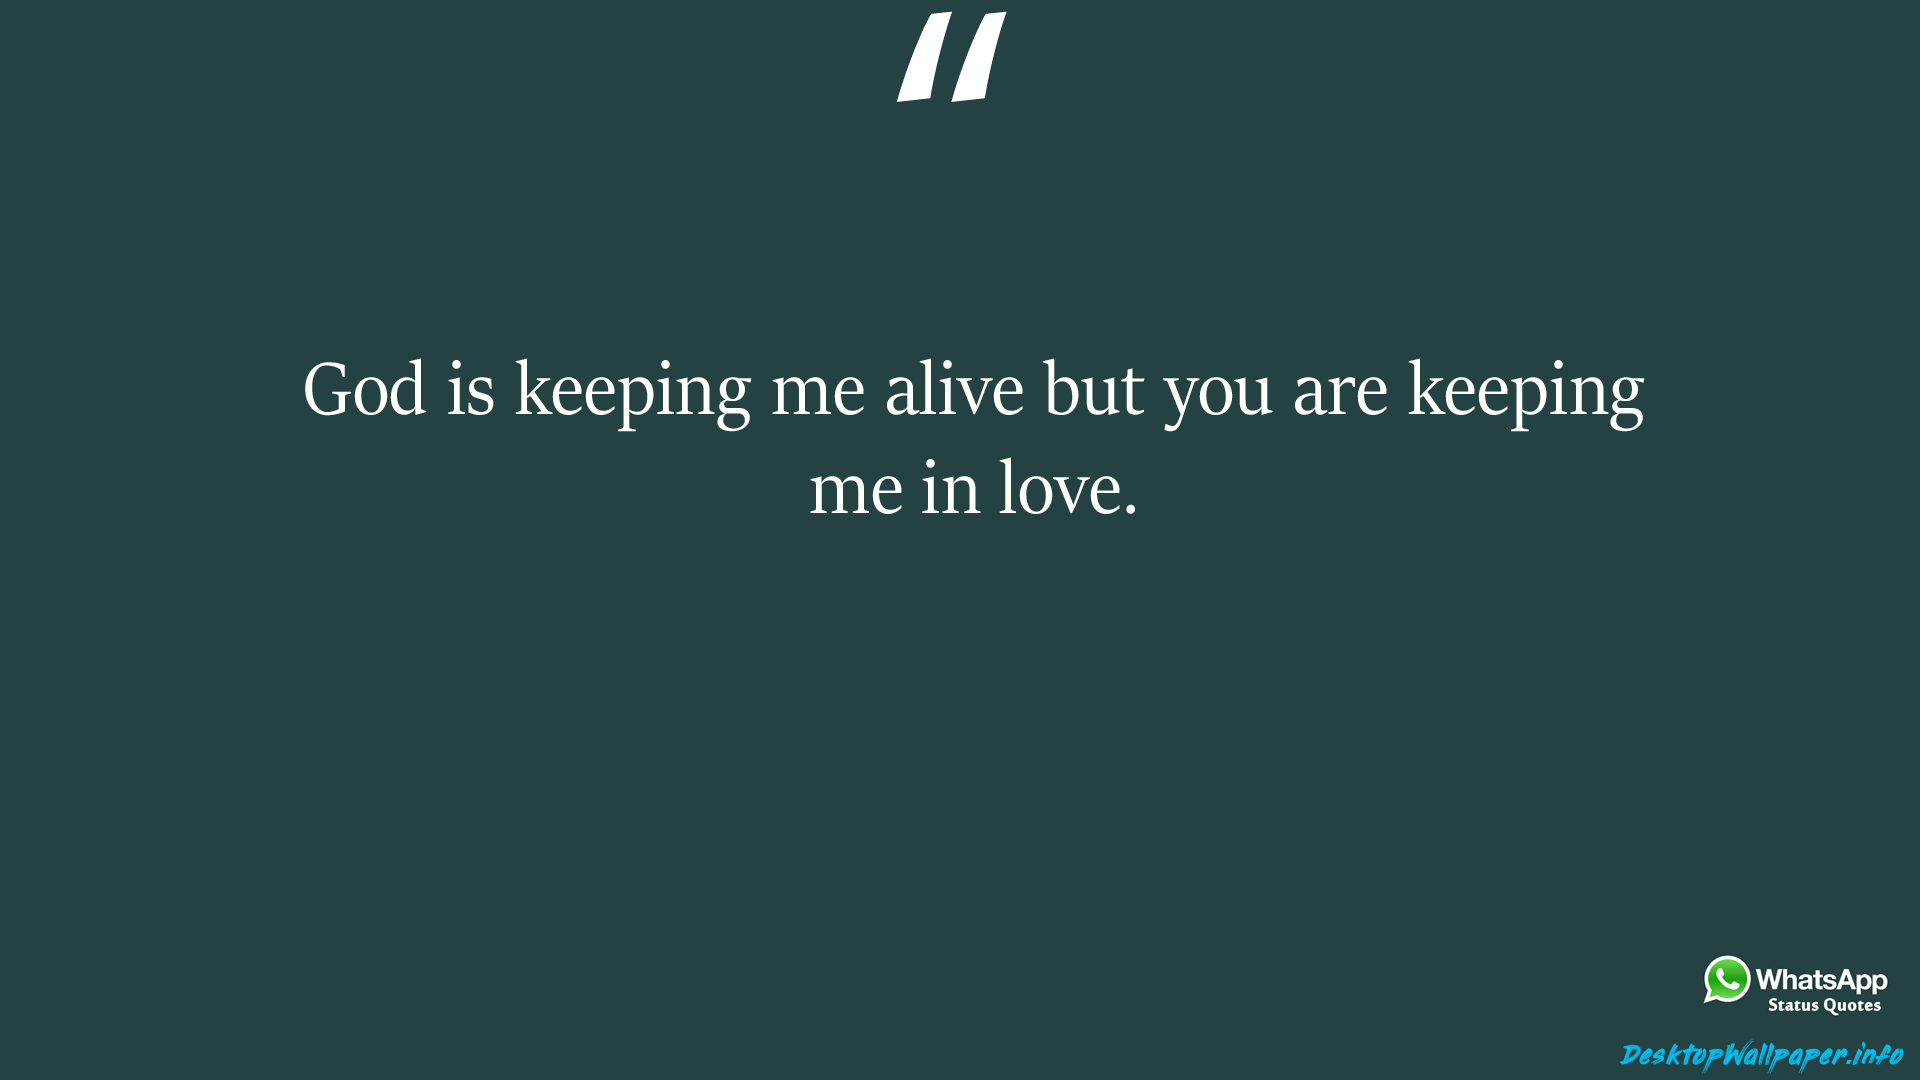 God is keeping me alive but you are keeping me in